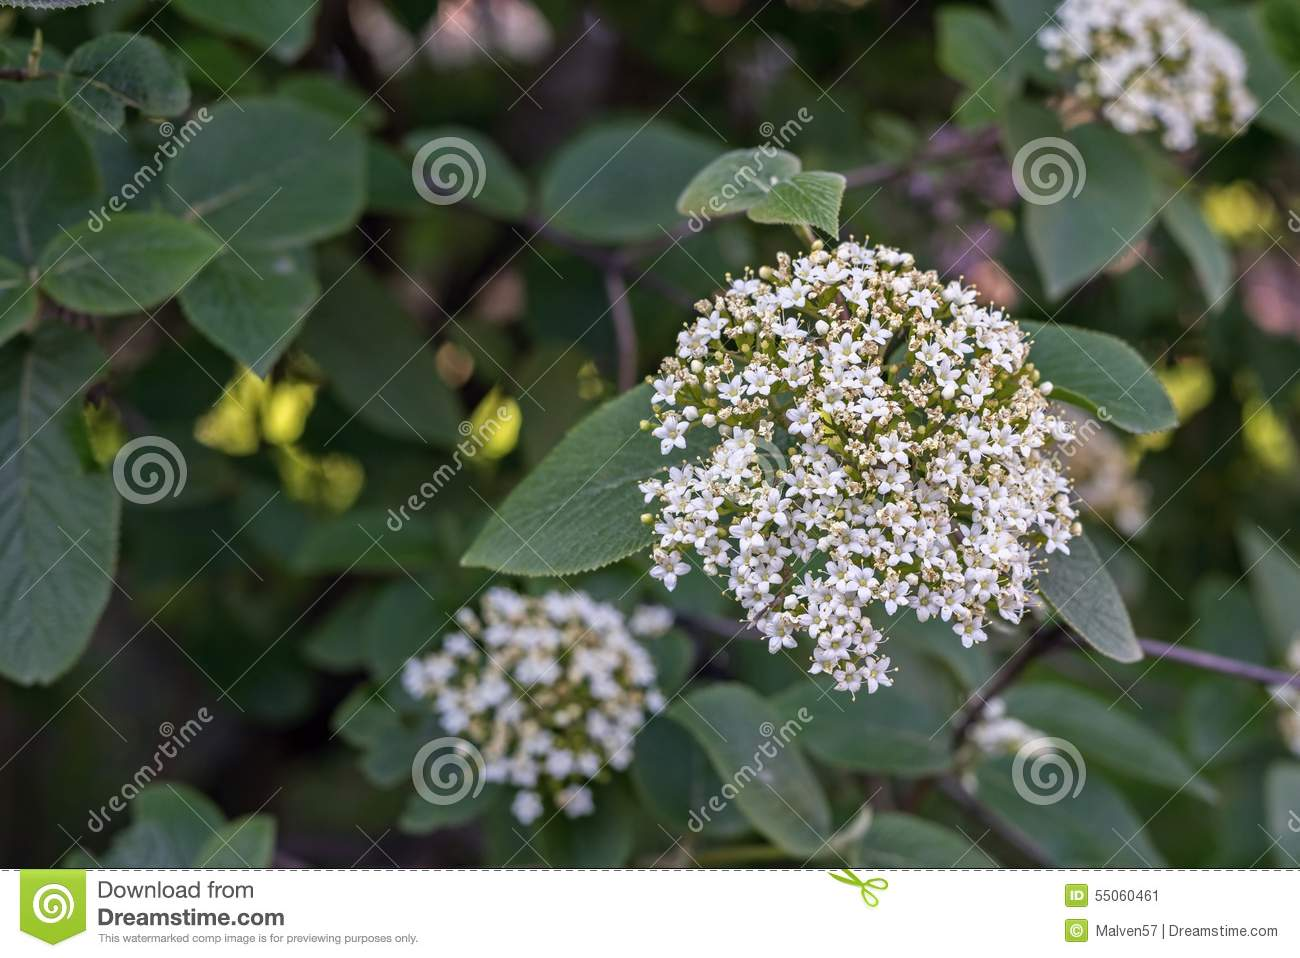 Bunch of small white flowers closeup stock image image of pure download bunch of small white flowers closeup stock image image of pure spring mightylinksfo